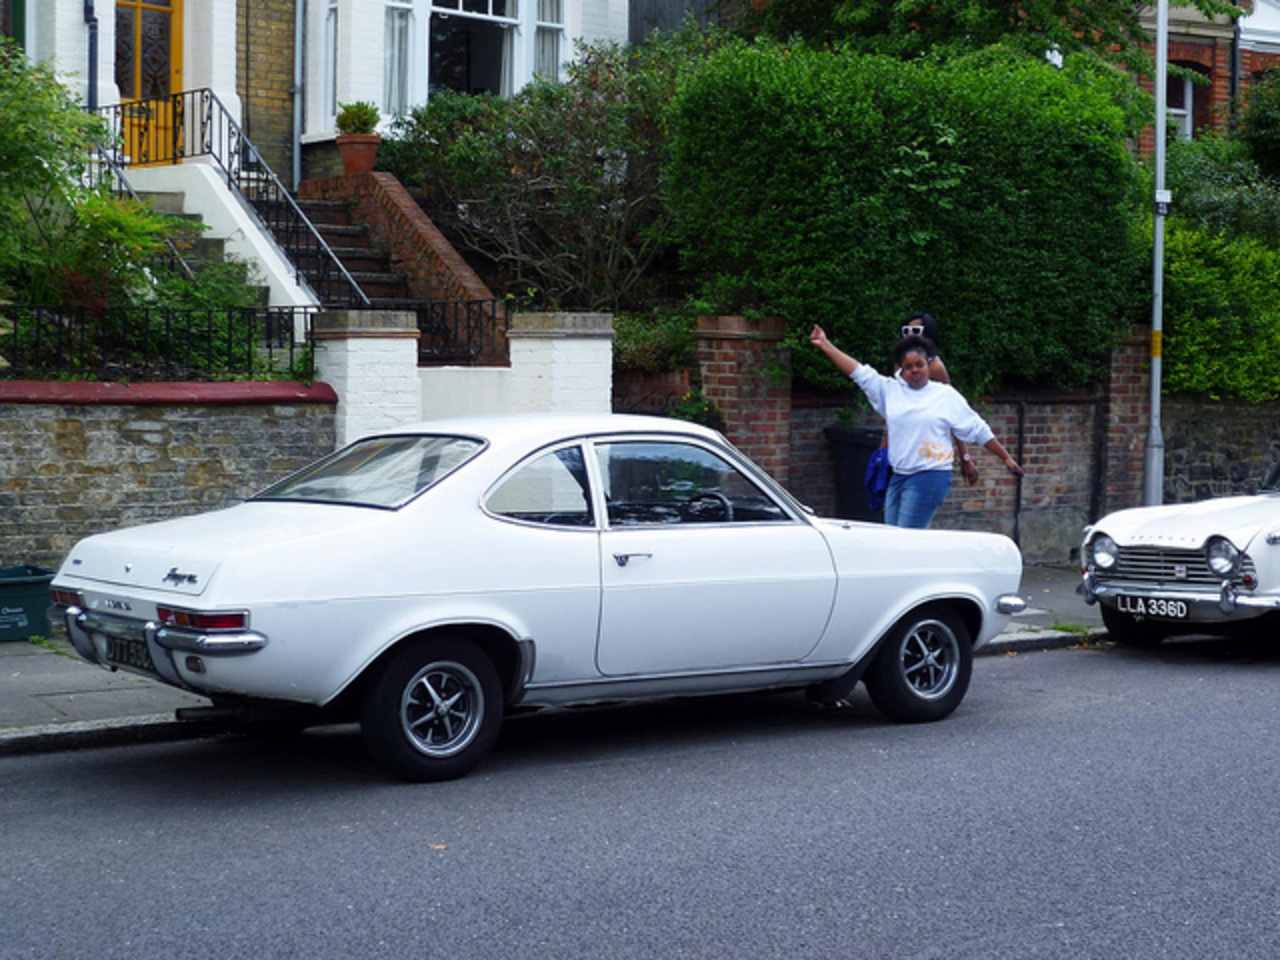 Vauxhall Firenza sl. Not so many of these left.. especially plain-jane